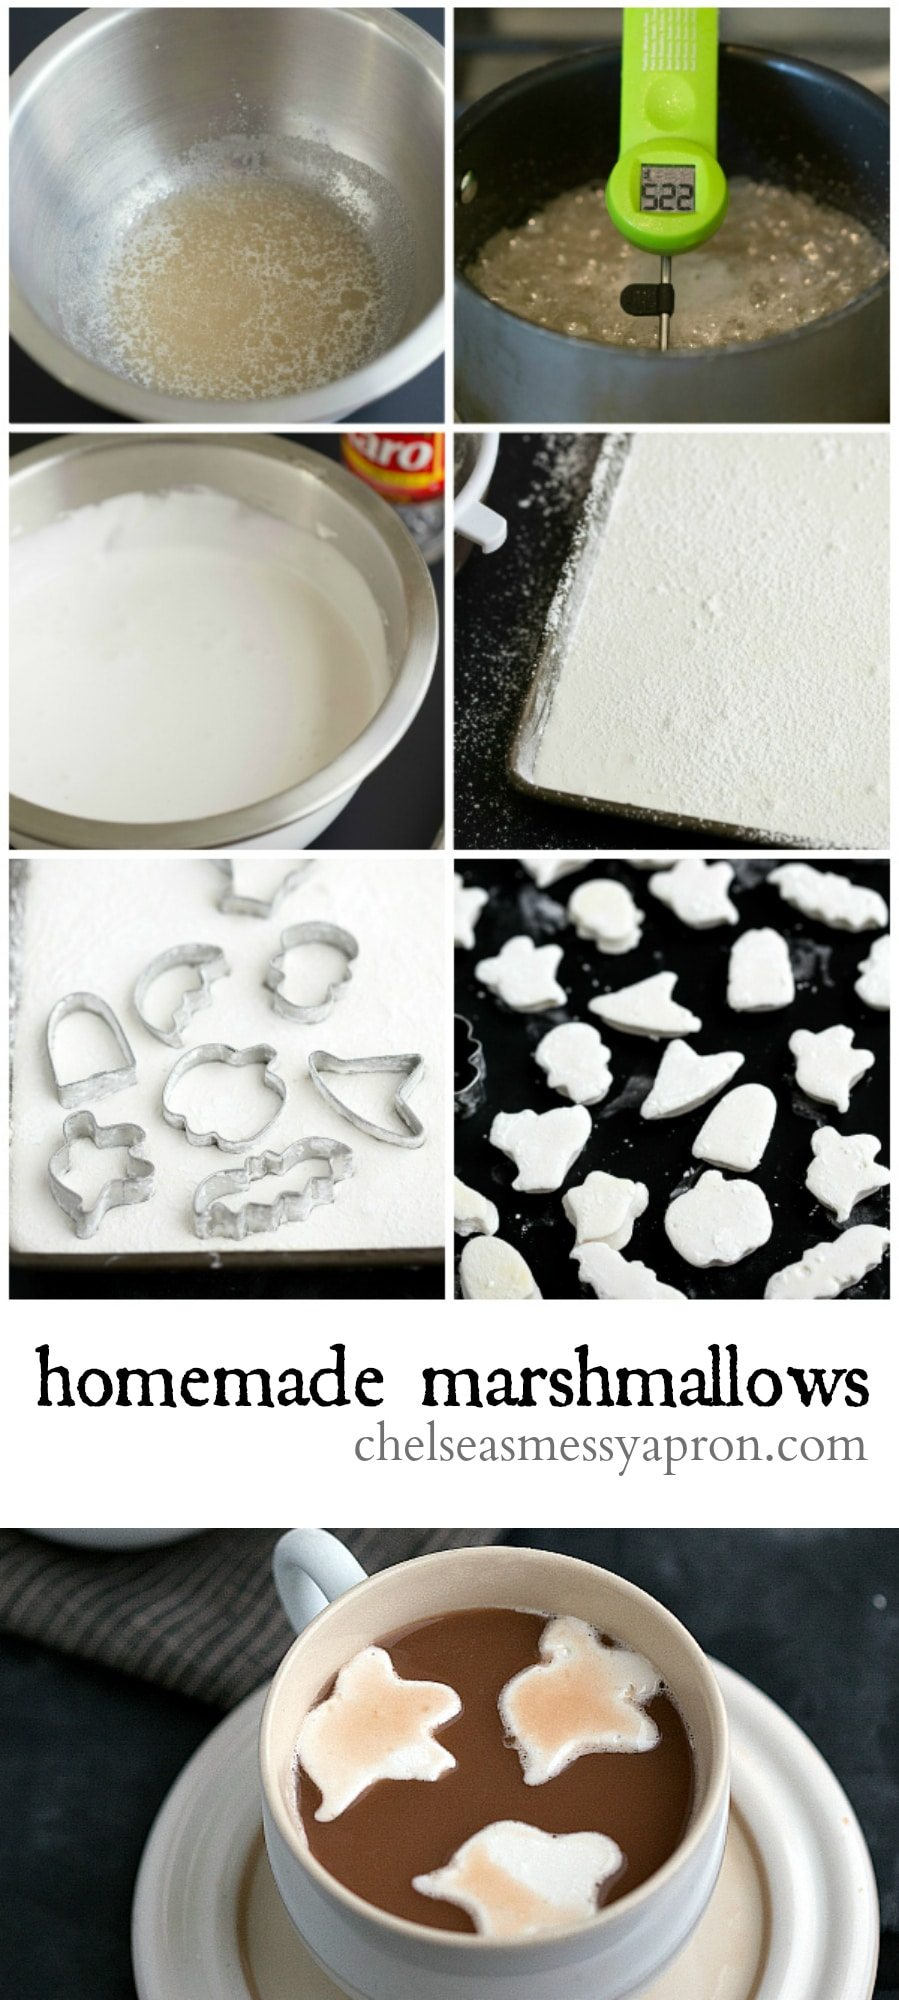 ... on how to make the best homemade from-scratch vanilla marshmallows